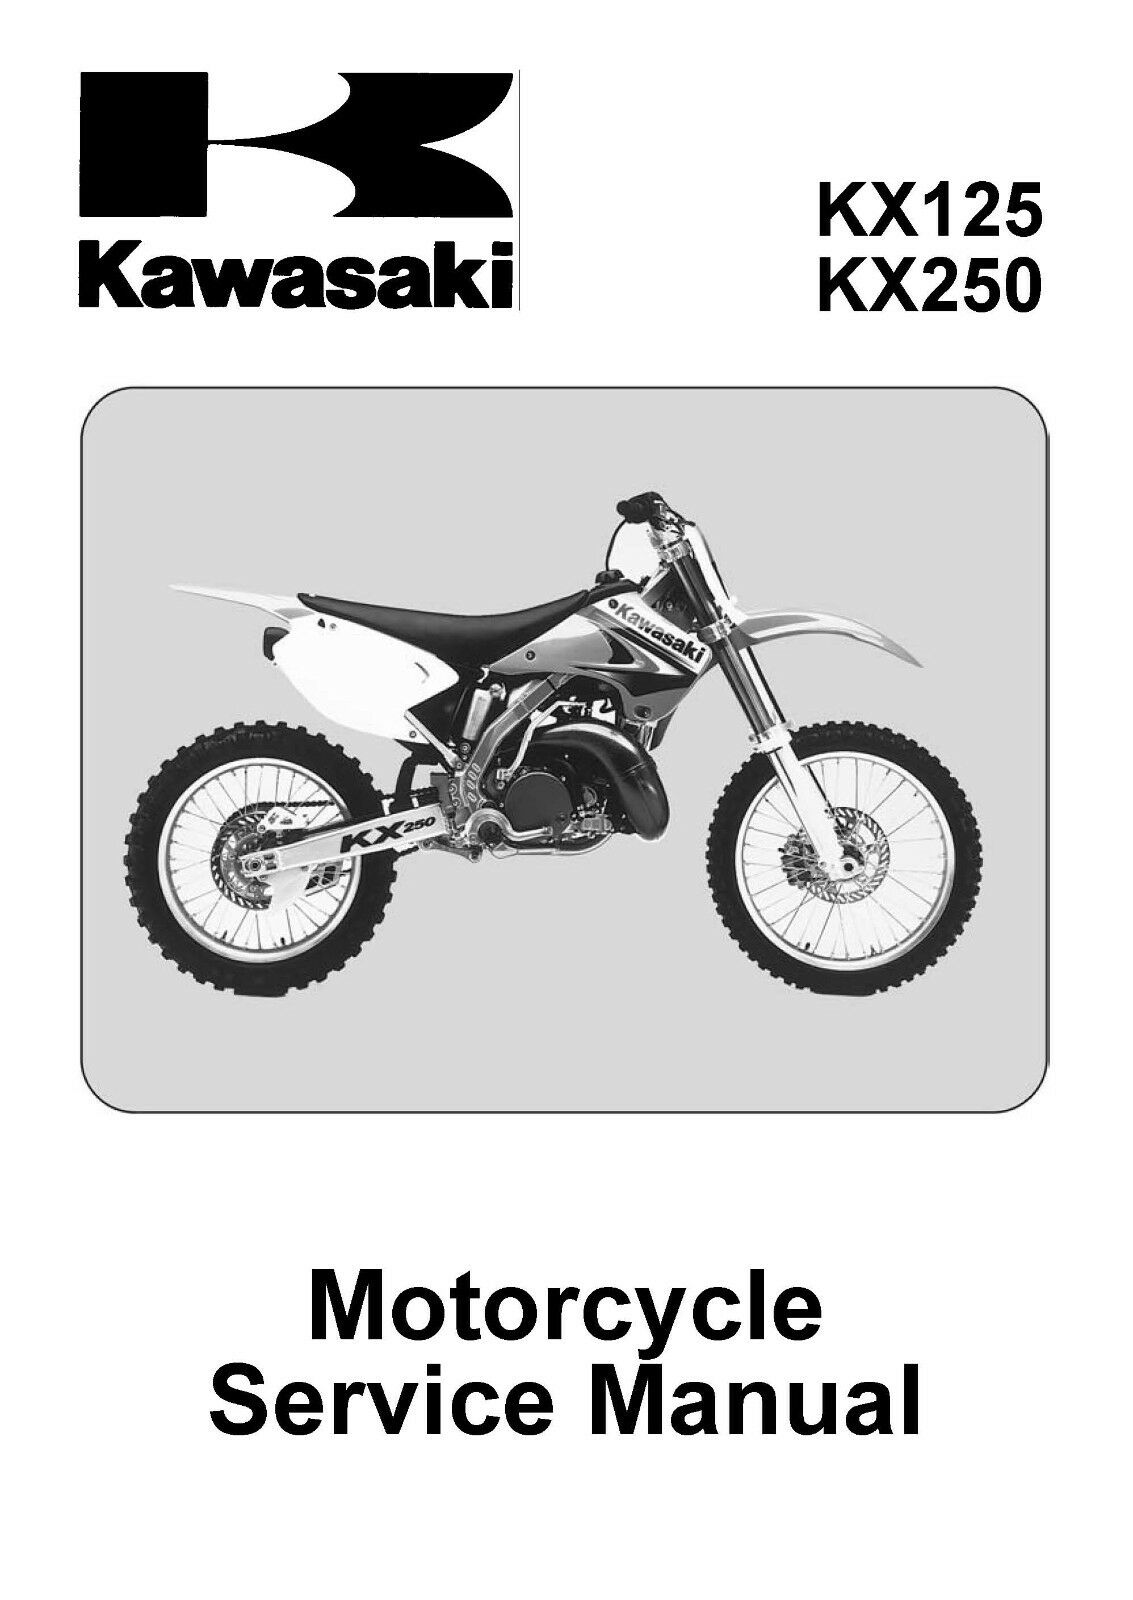 Kawasaki service manual 2003 KX125-M1 & KX250-M1 / 2004 KX125-M2 1 of 12 ...